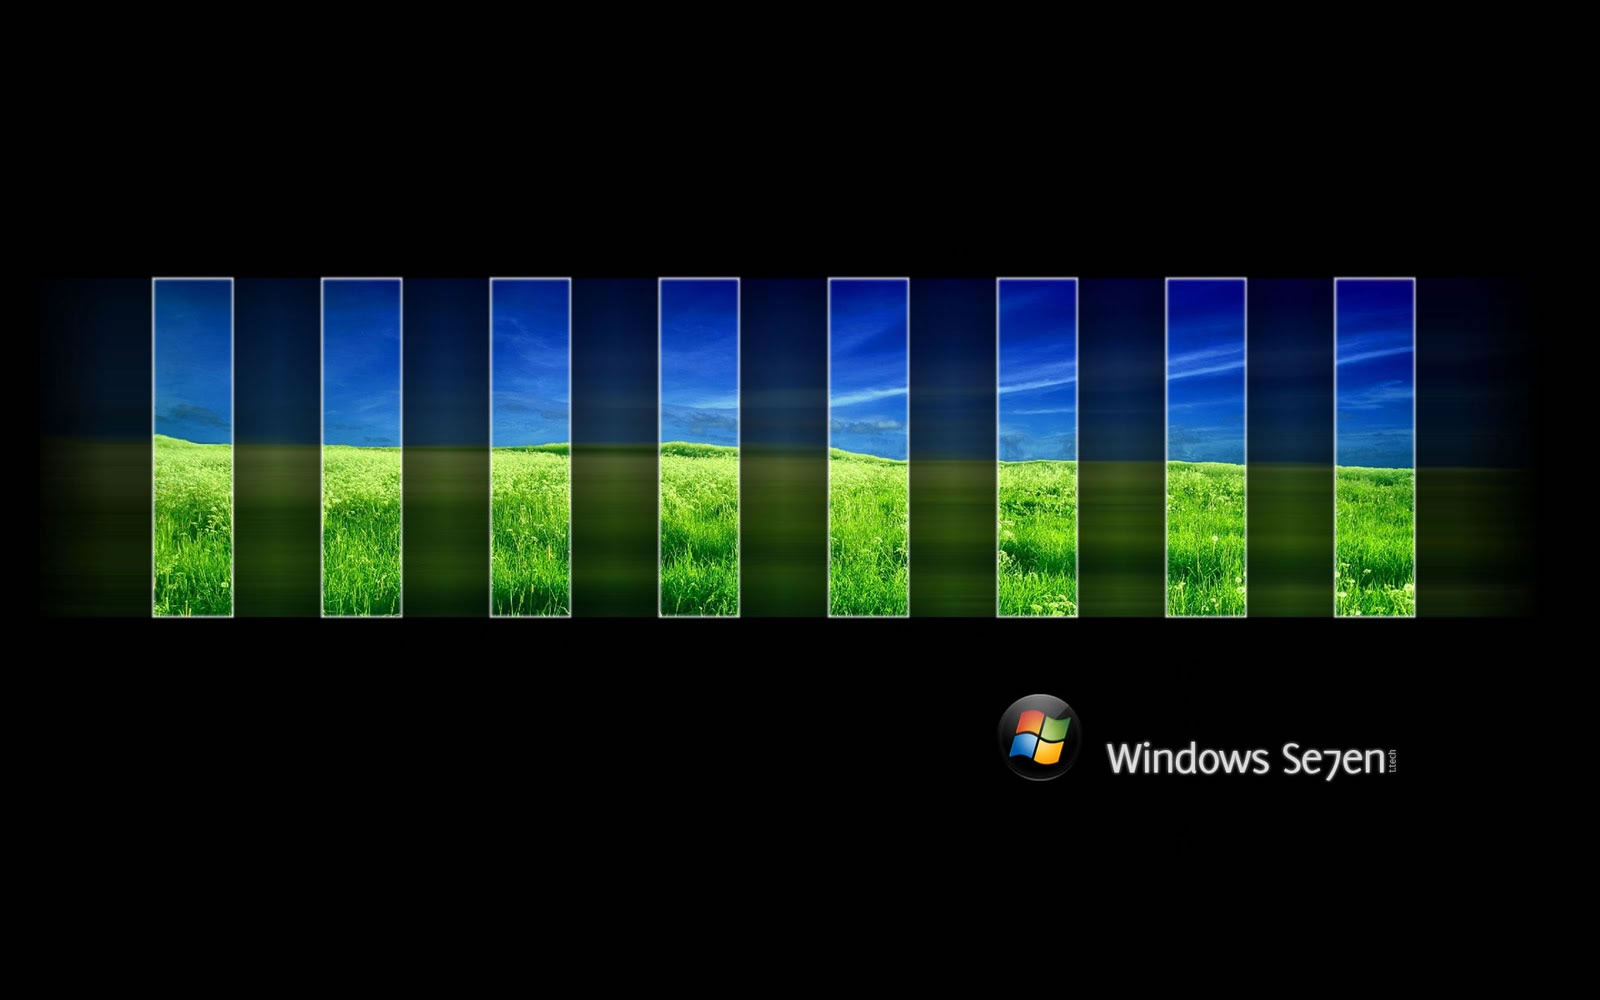 mnurux: windows 7 latest high quality wallpapers, download free